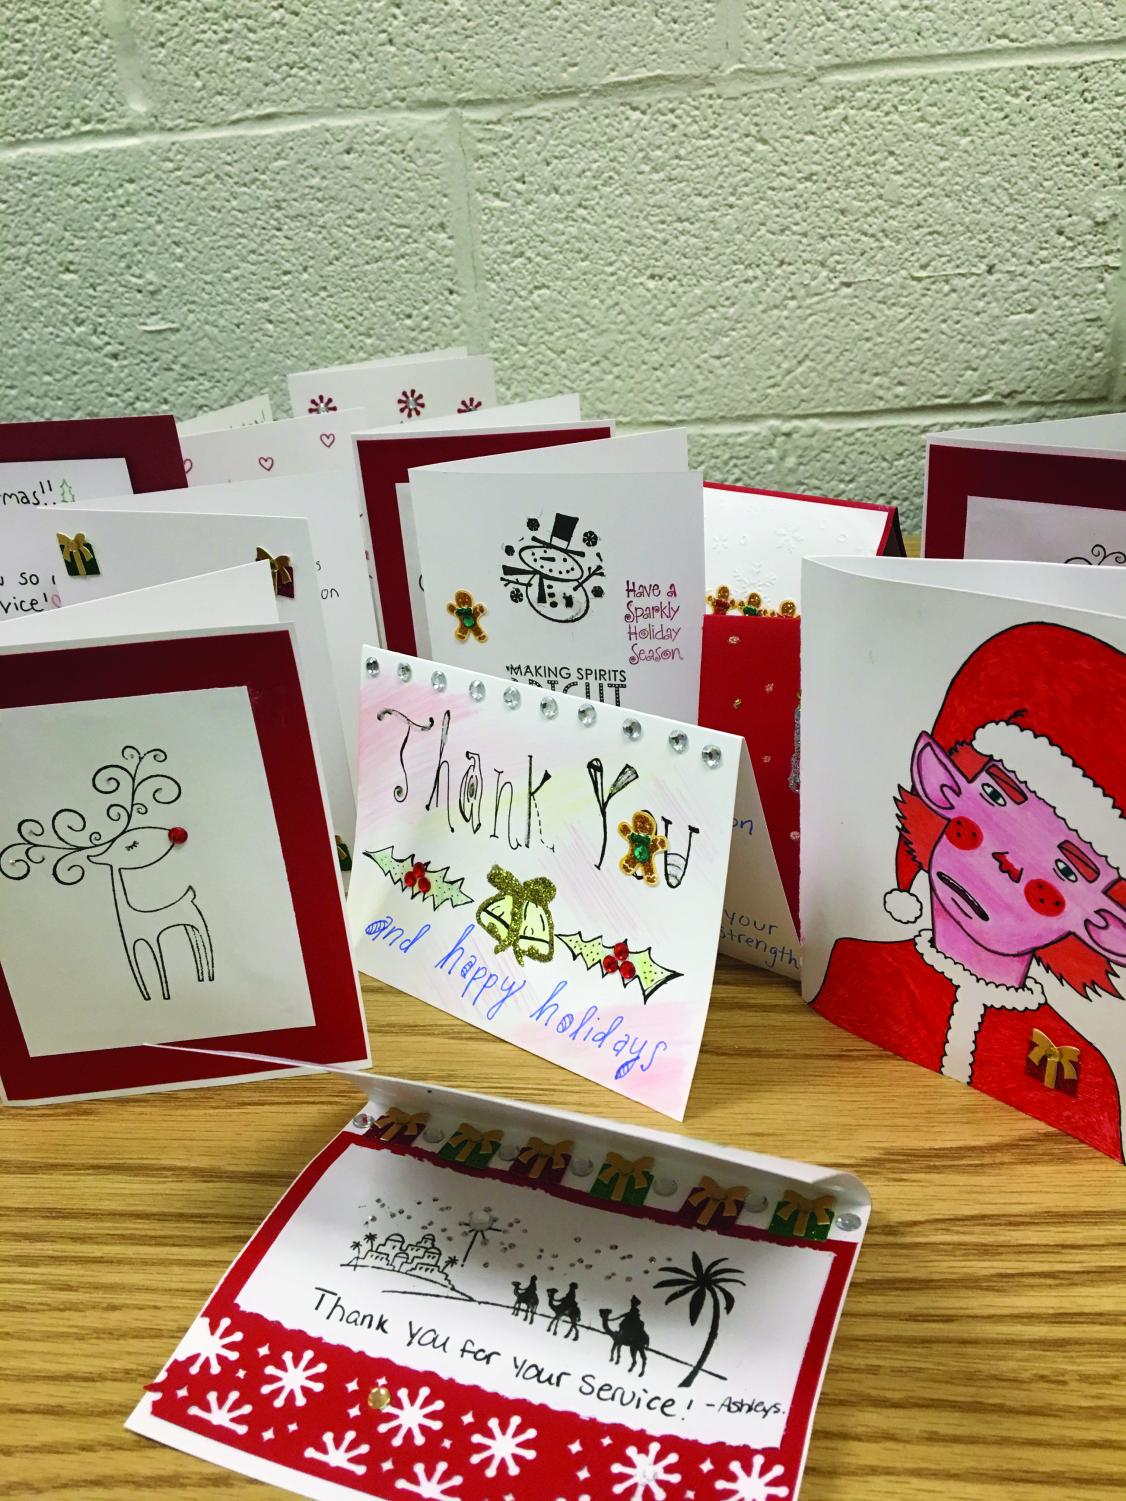 This holiday season, Campus Current's staff designed thank-you cards for soliders. Campus Current sent these cards, toiletries and a copy of the student newspaper to a unit in Afghanistan.